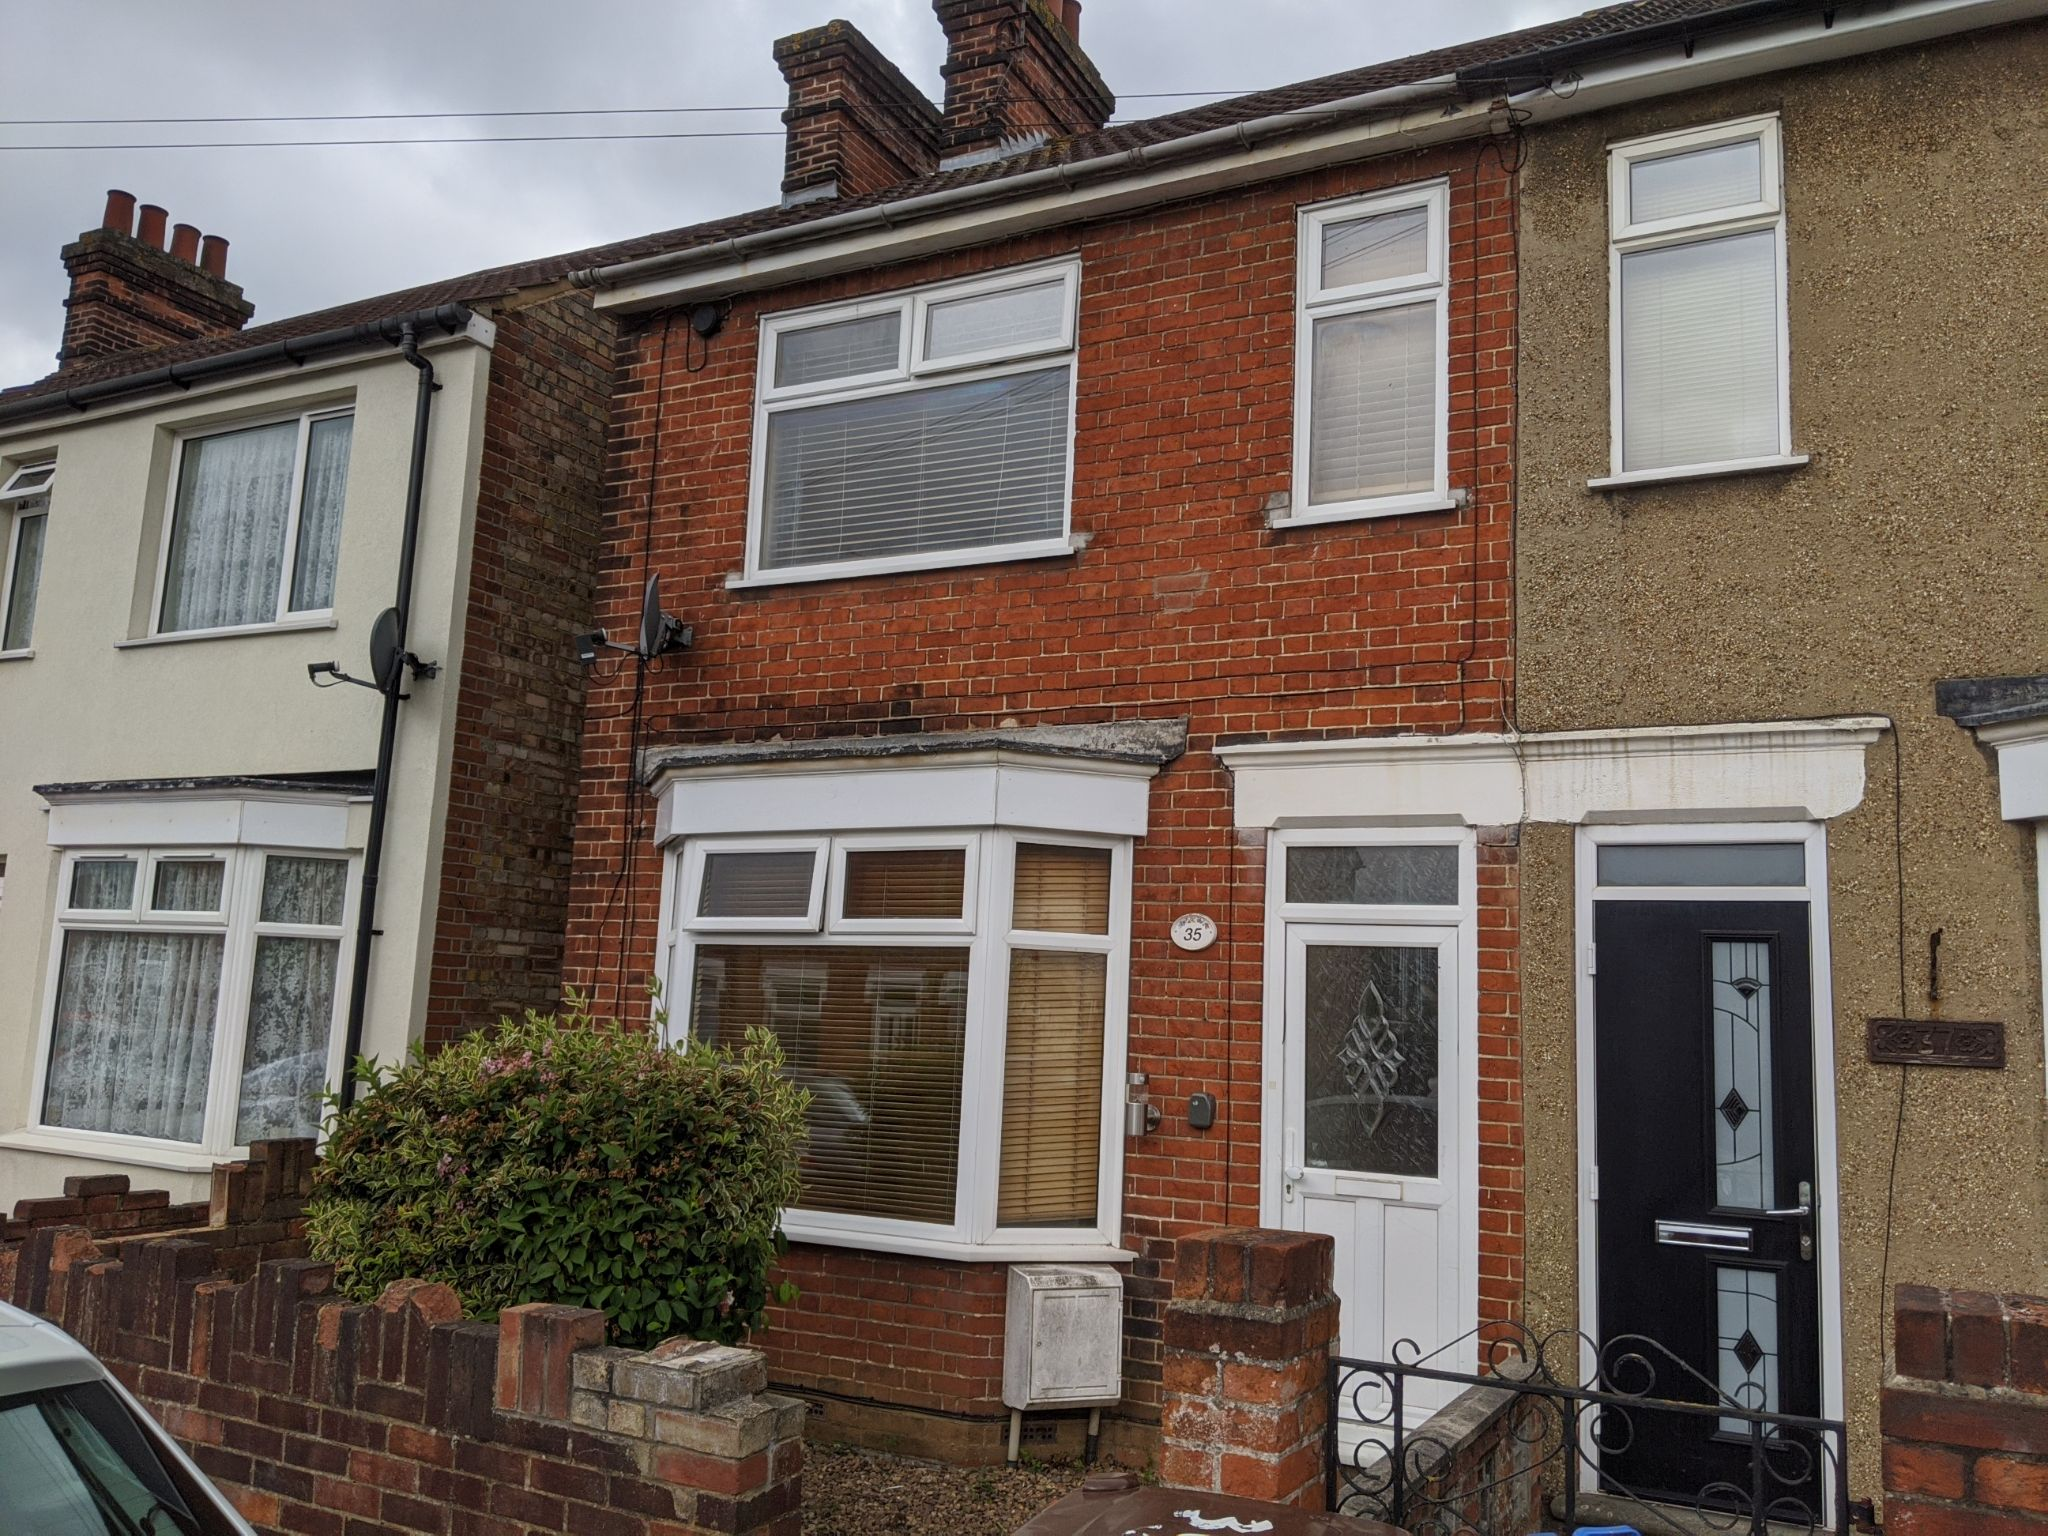 3 bedroom end terraced house To Let in Ipswich - Front of Property